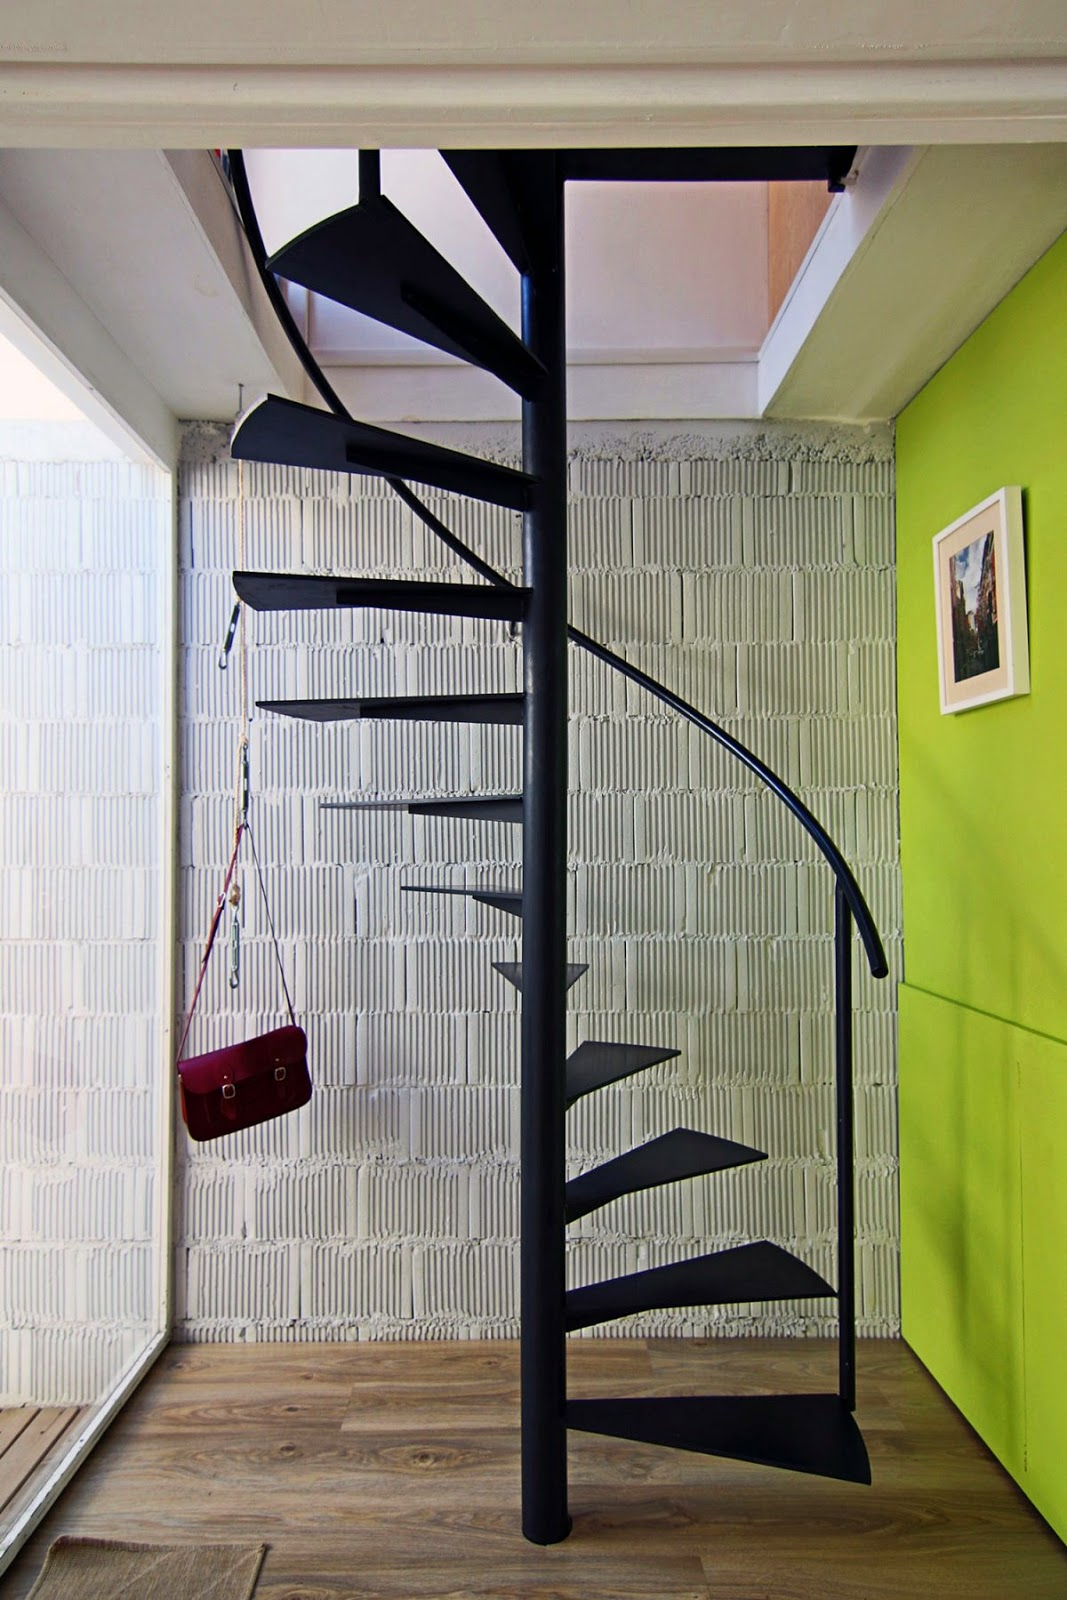 Some stair designs for small spaces and small house - Stairs in small house ideas ...